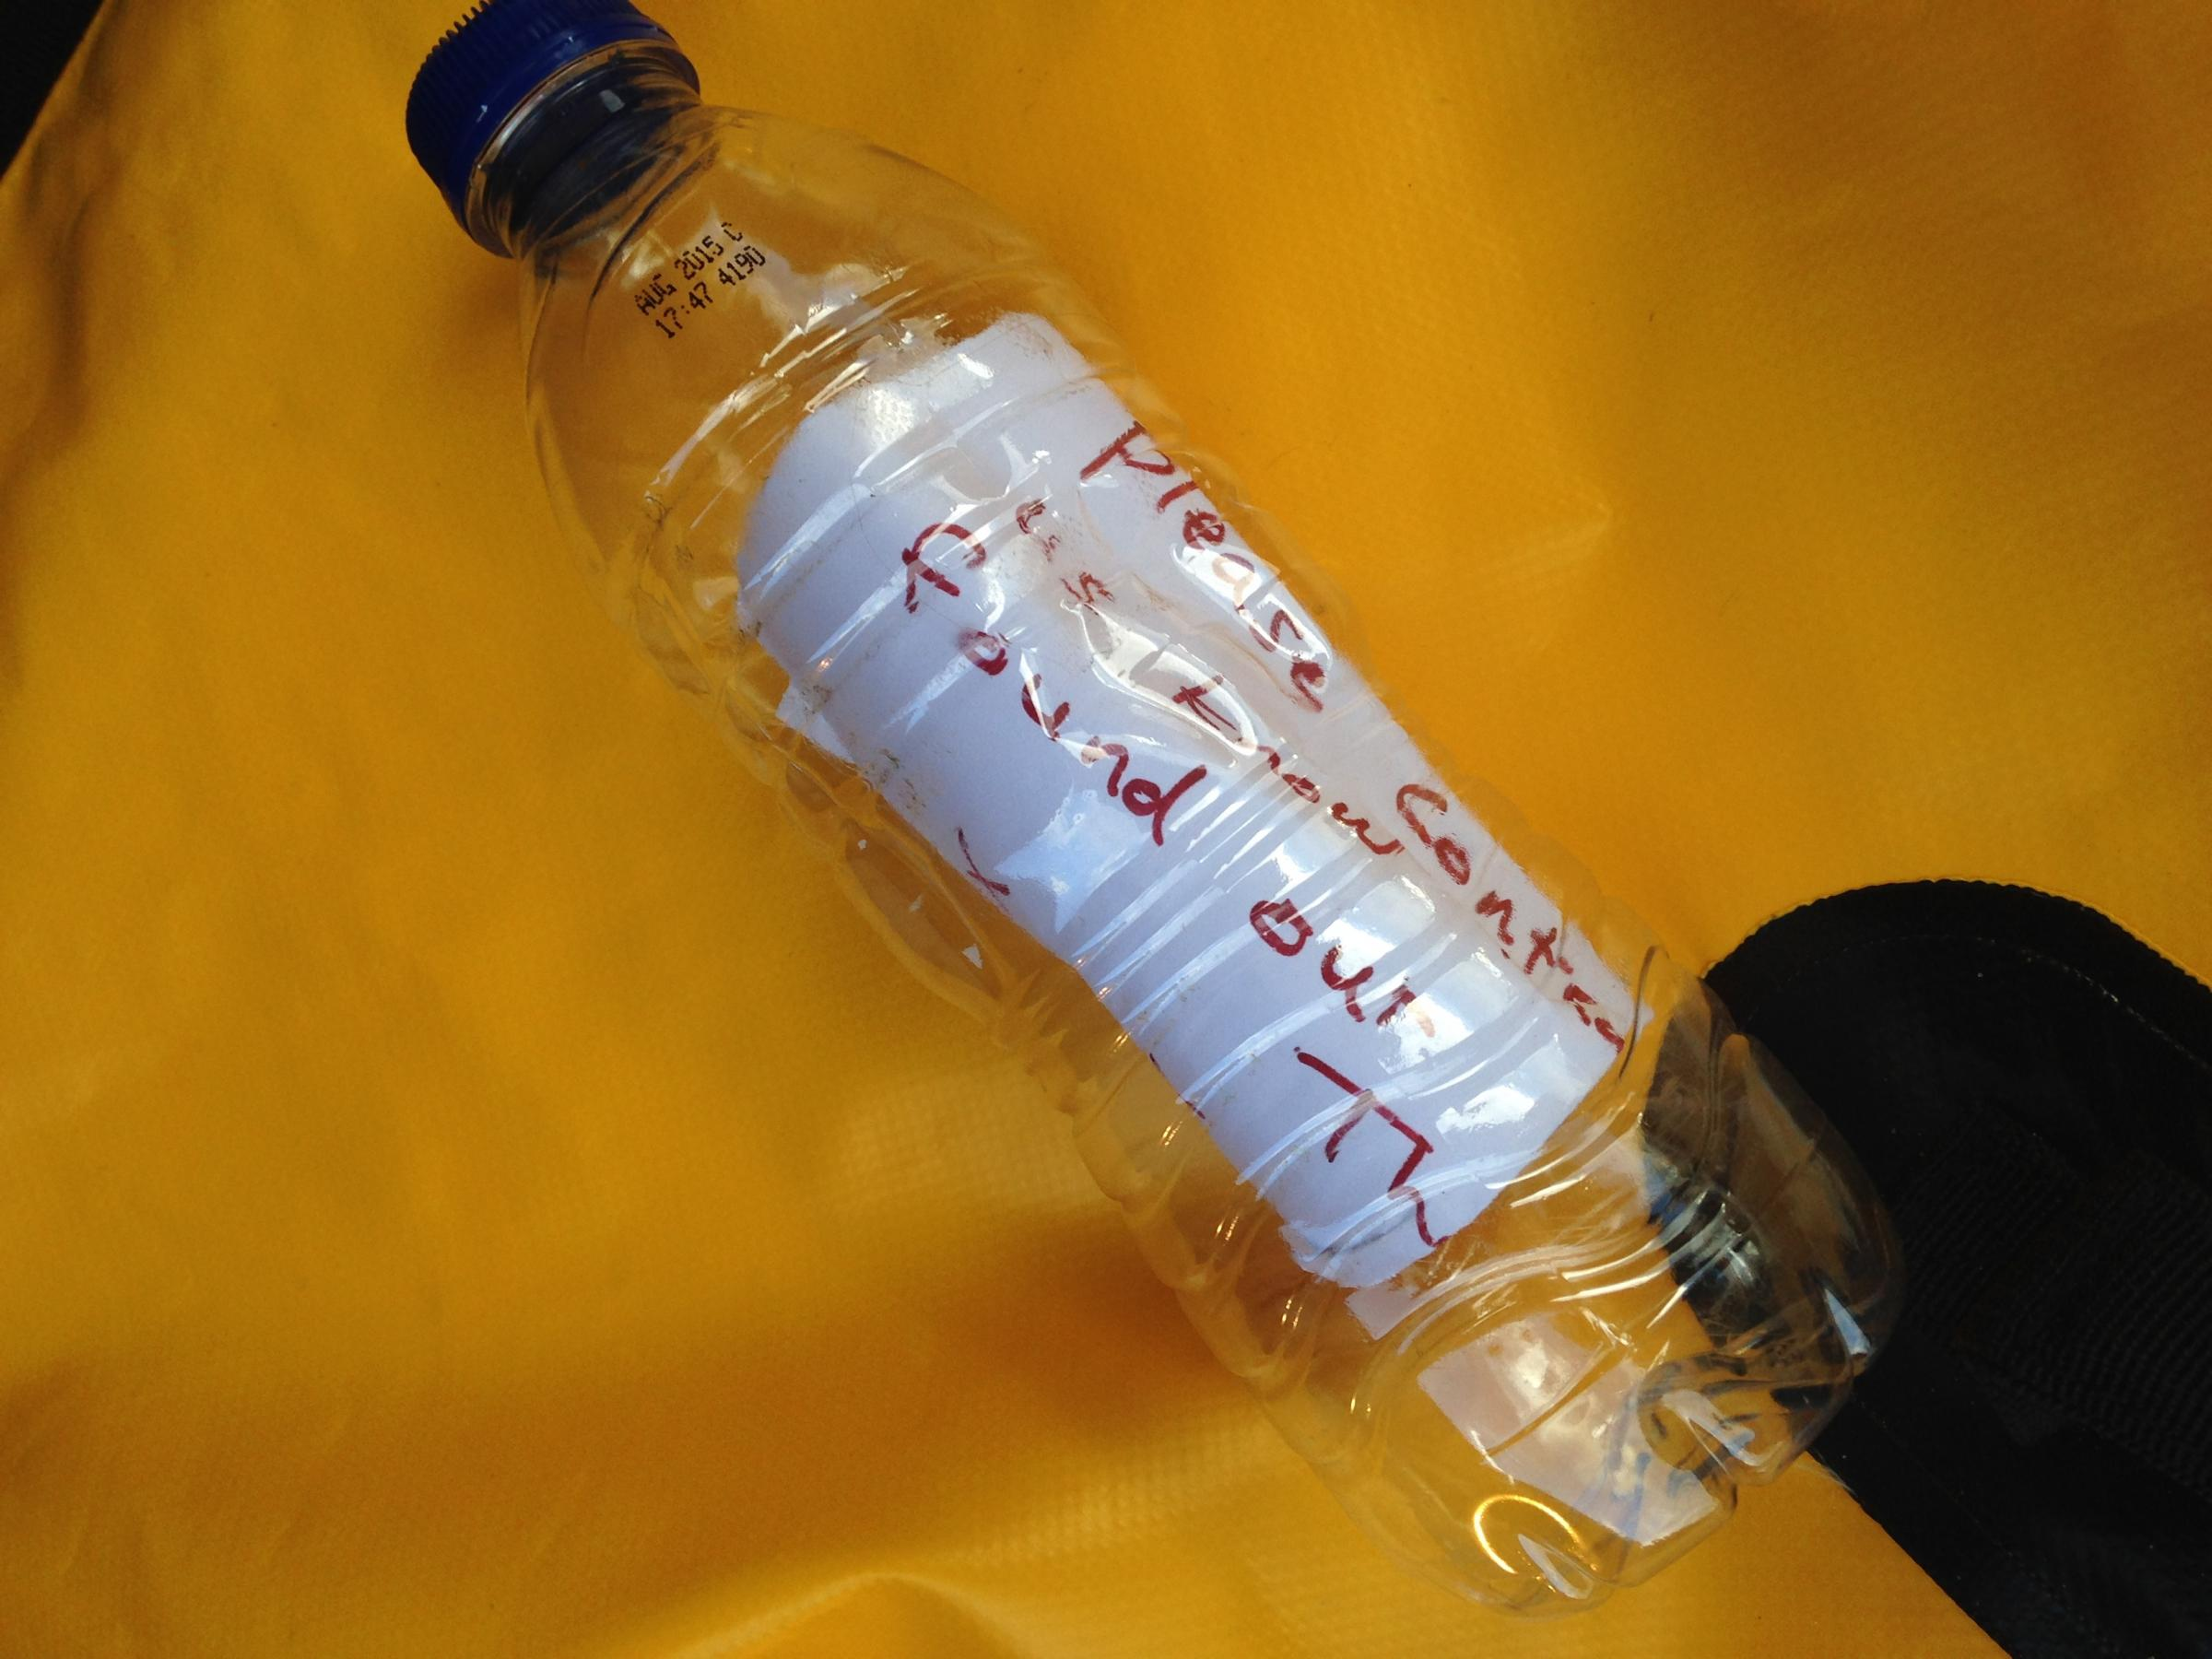 Swimmer finds youngsters' message in a bottle